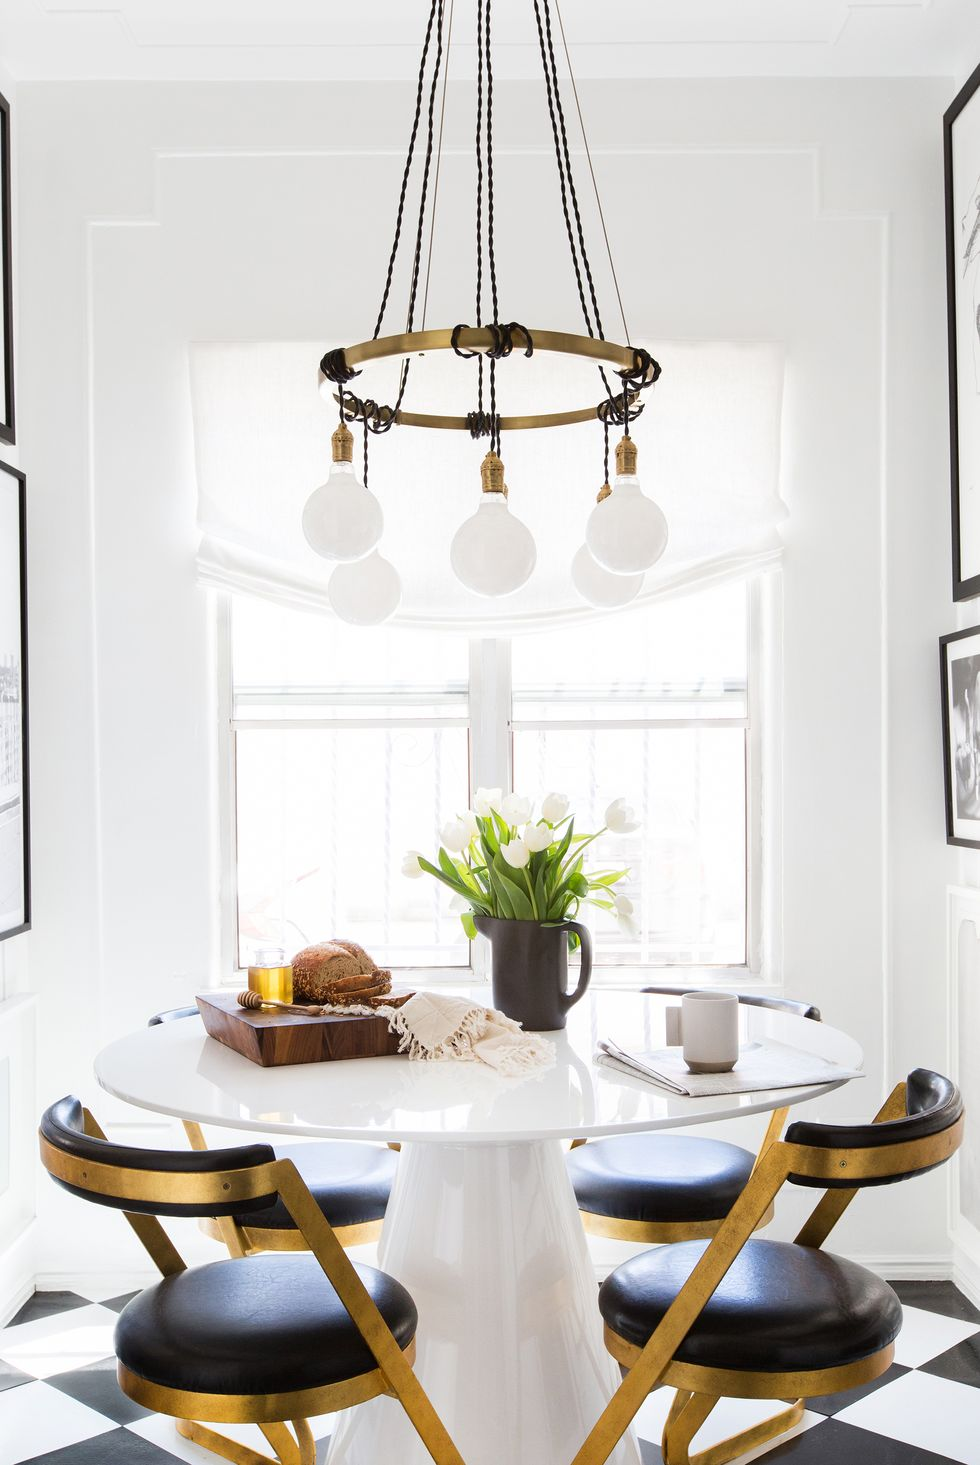 small-space-design-design-by-brady-tolbert-for-ehd-photographer-by-tessa-neustadt-7-1561391634